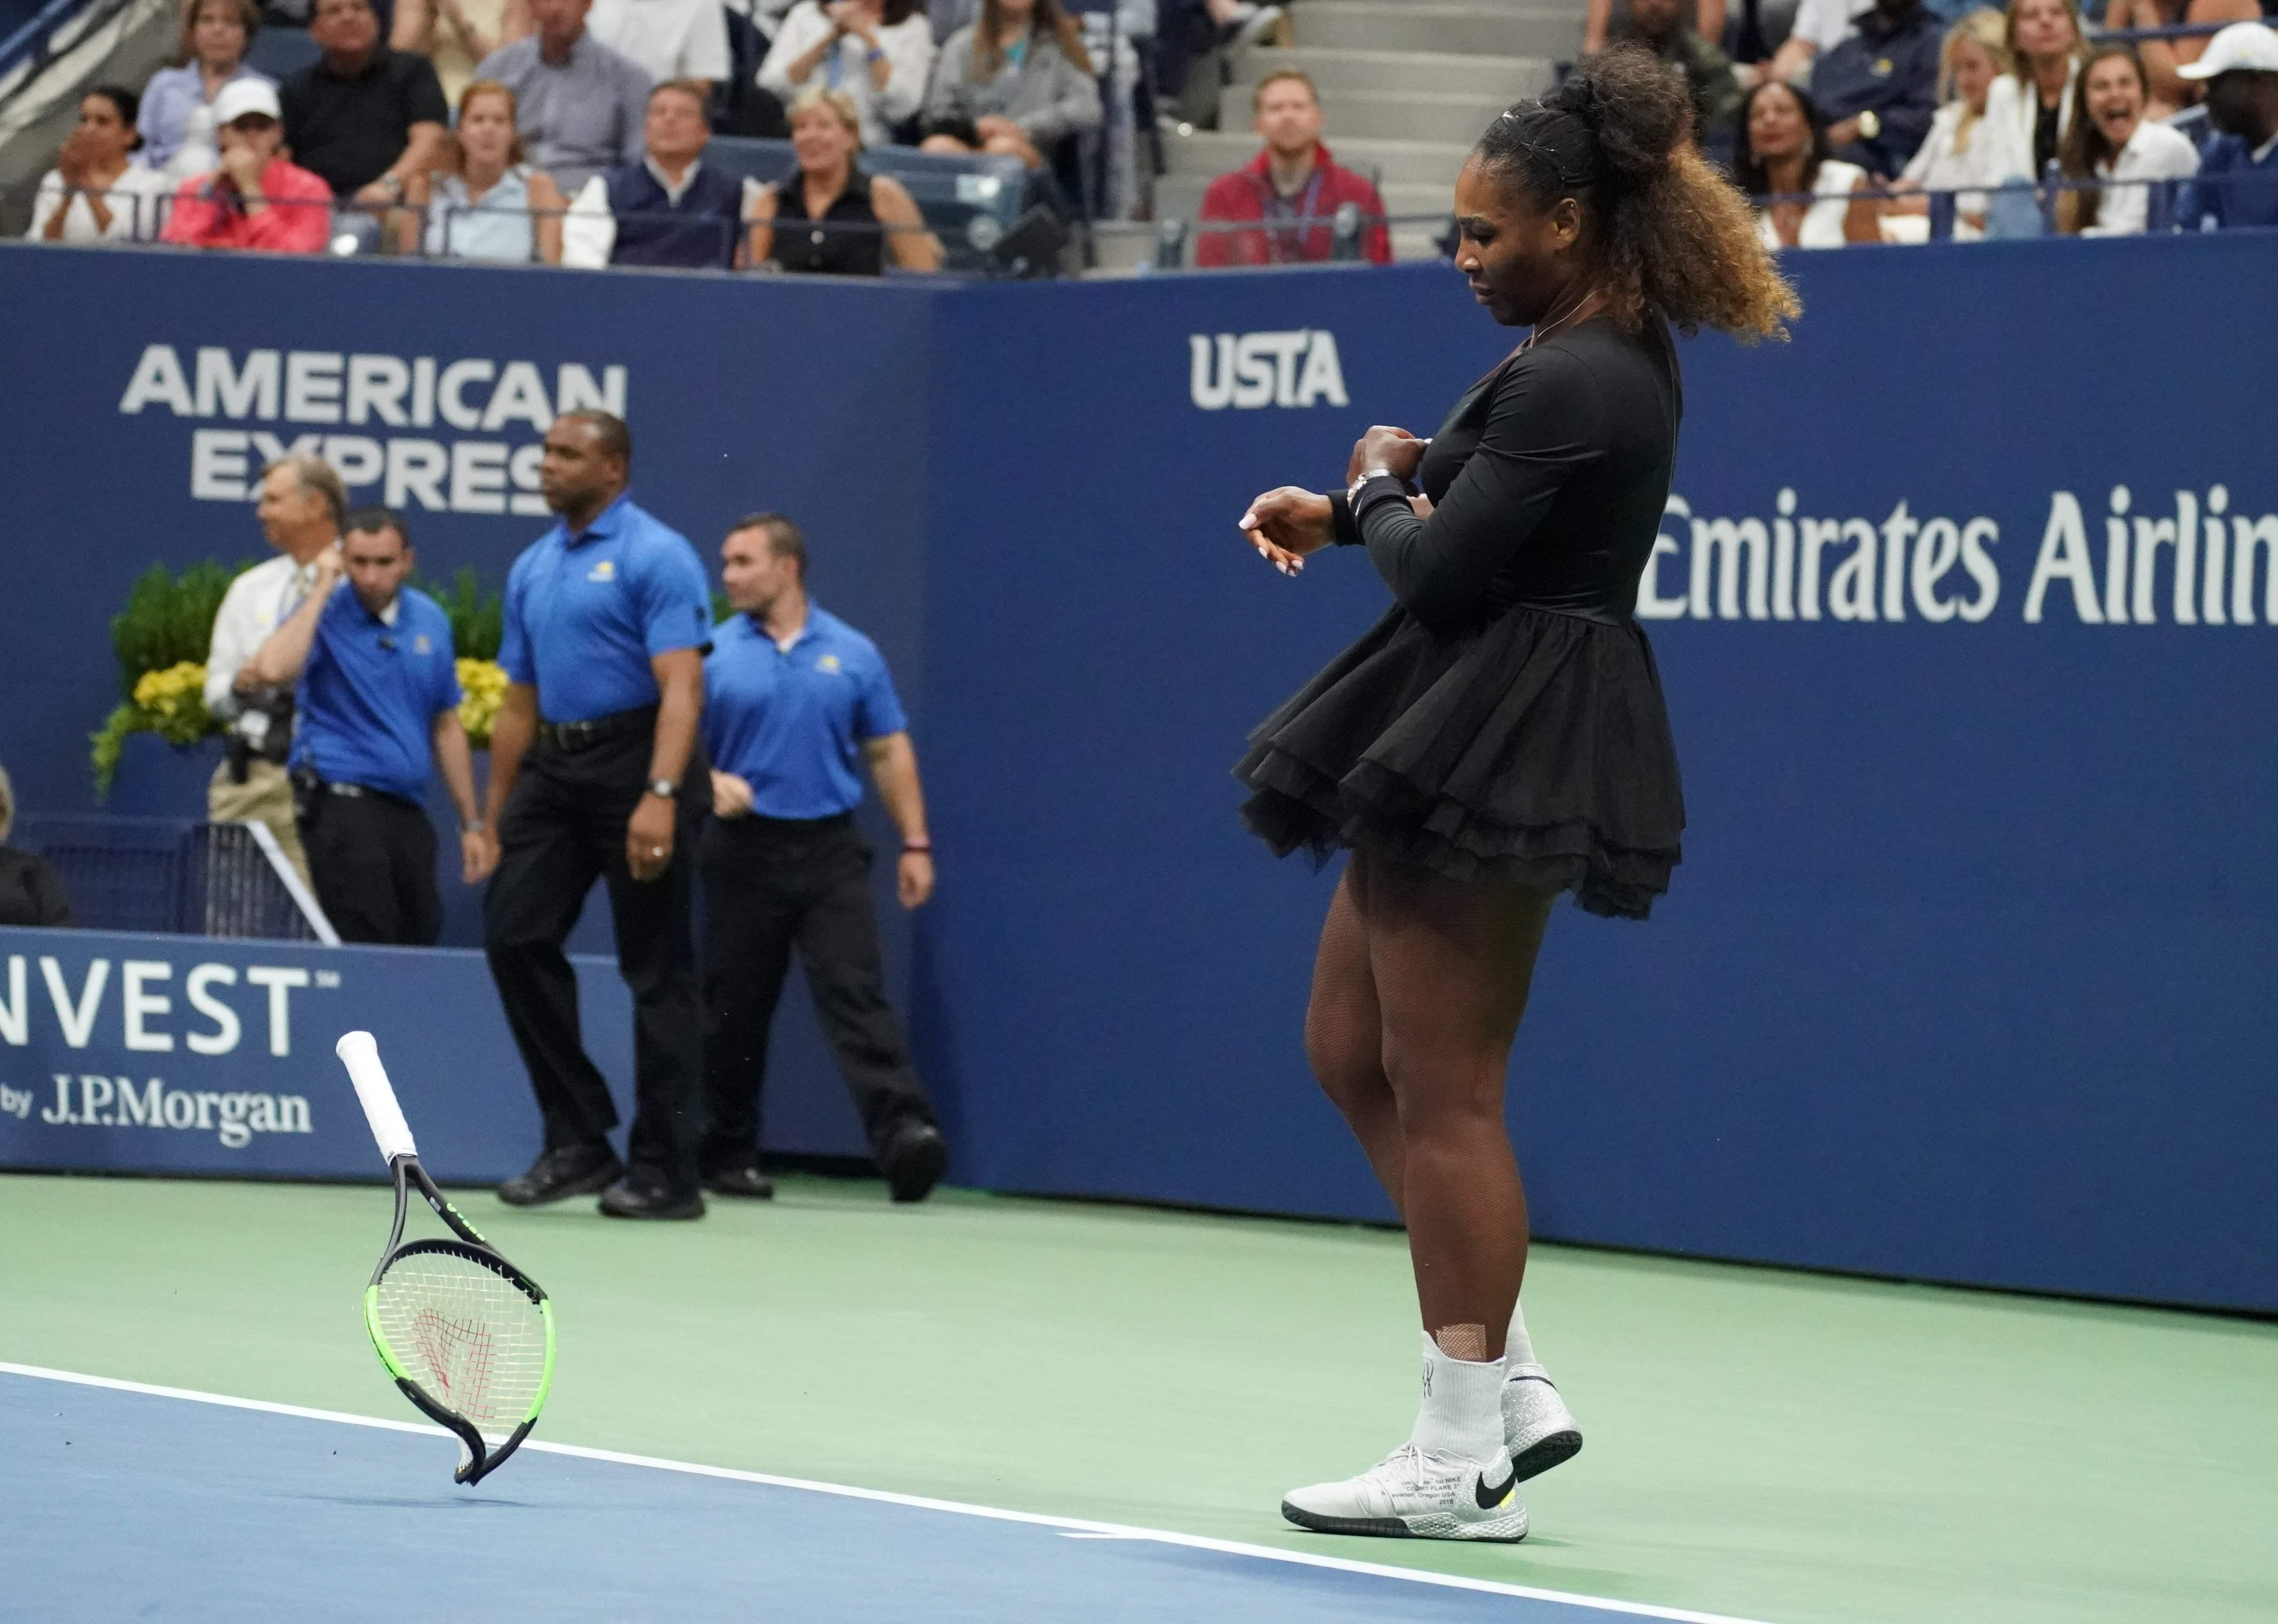 Serena Williams was left furious during the US Open final